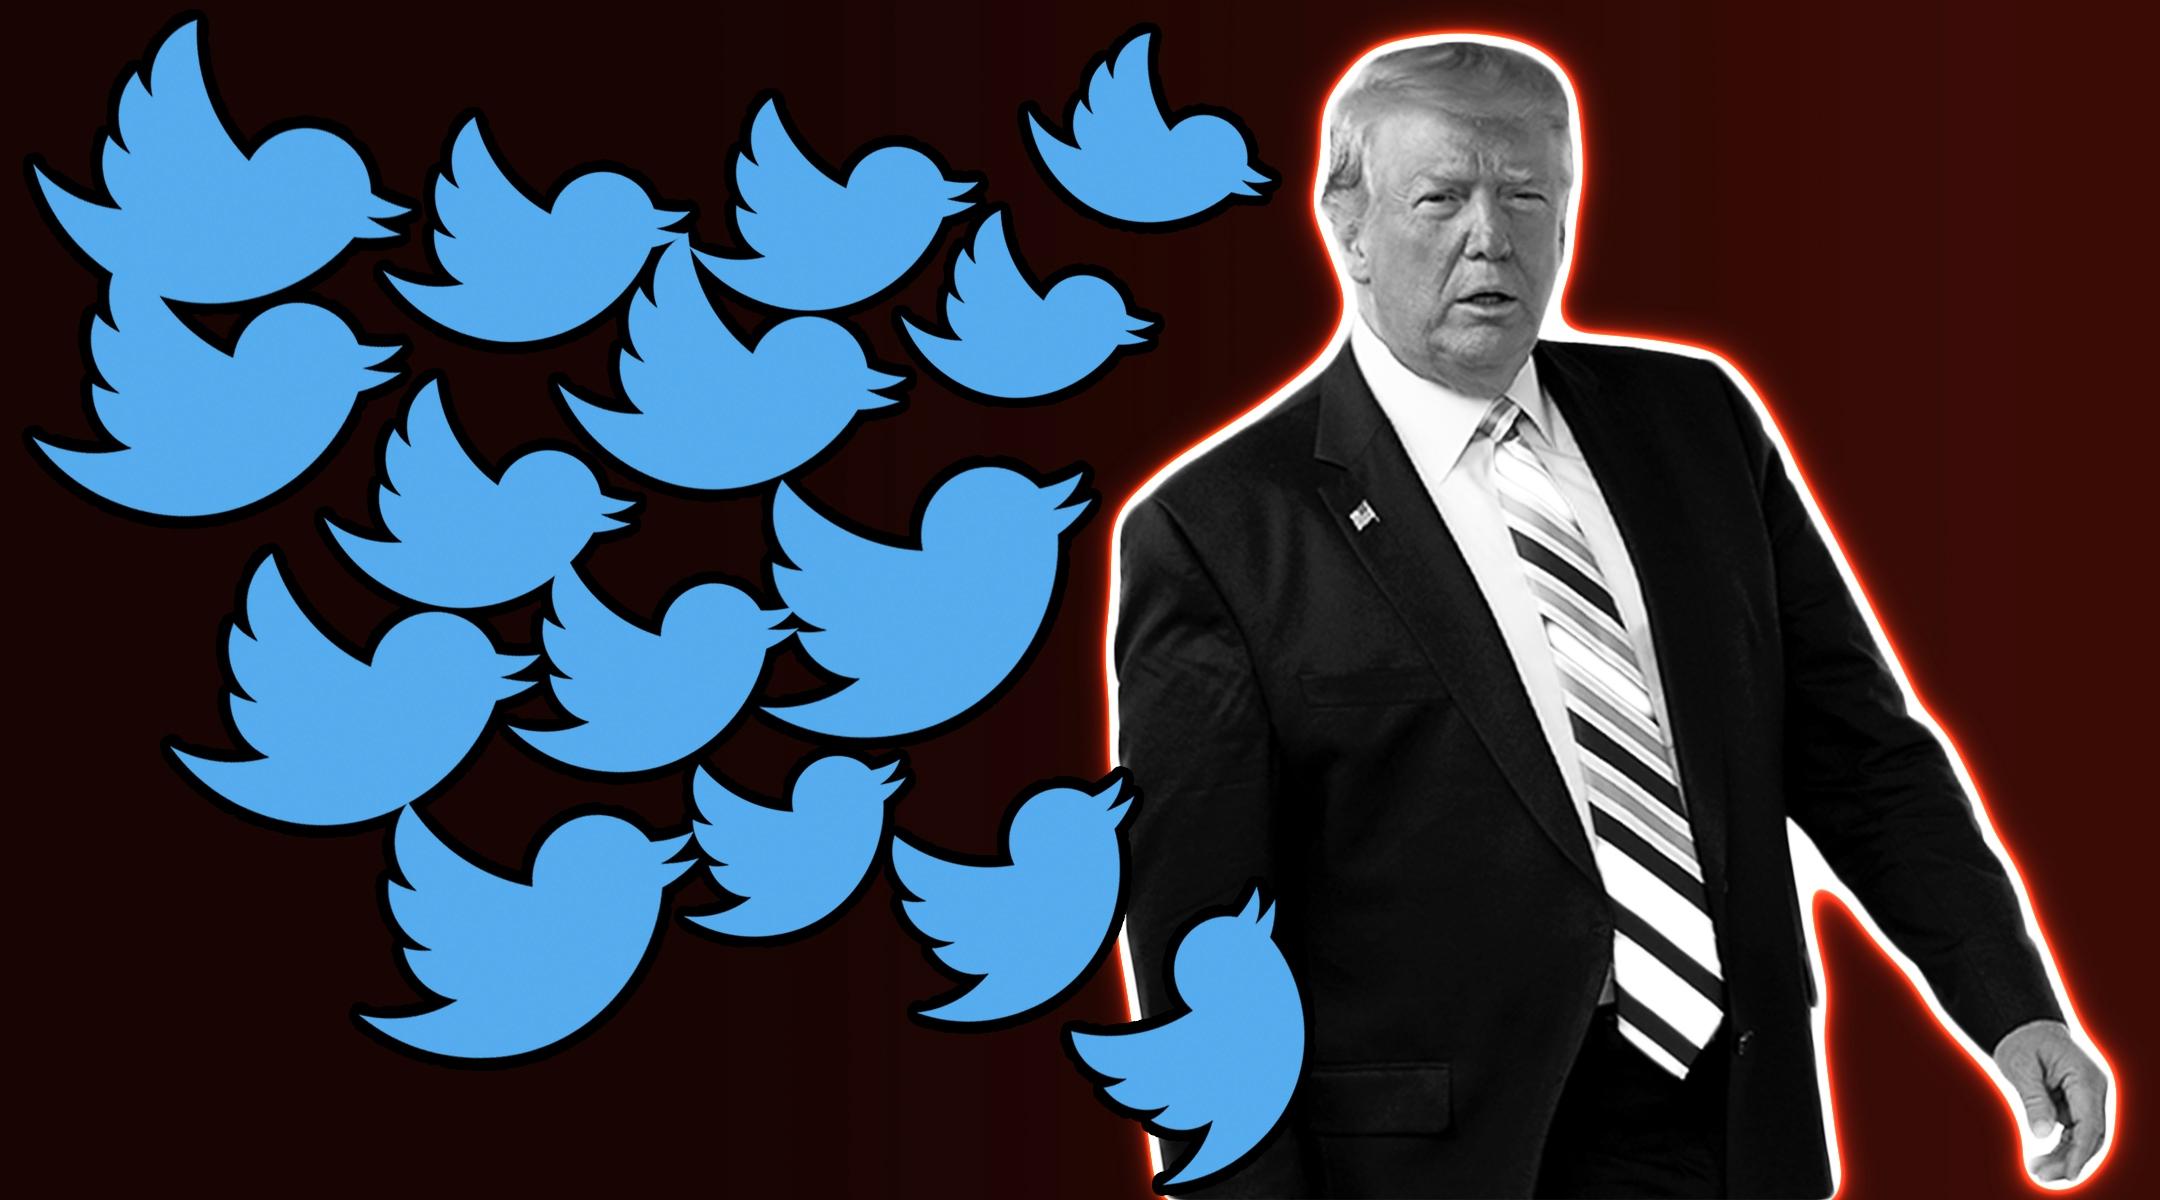 Anti-Semitism and hate speech are rampant on Twitter. Policing Trump doesn't solve the problem.